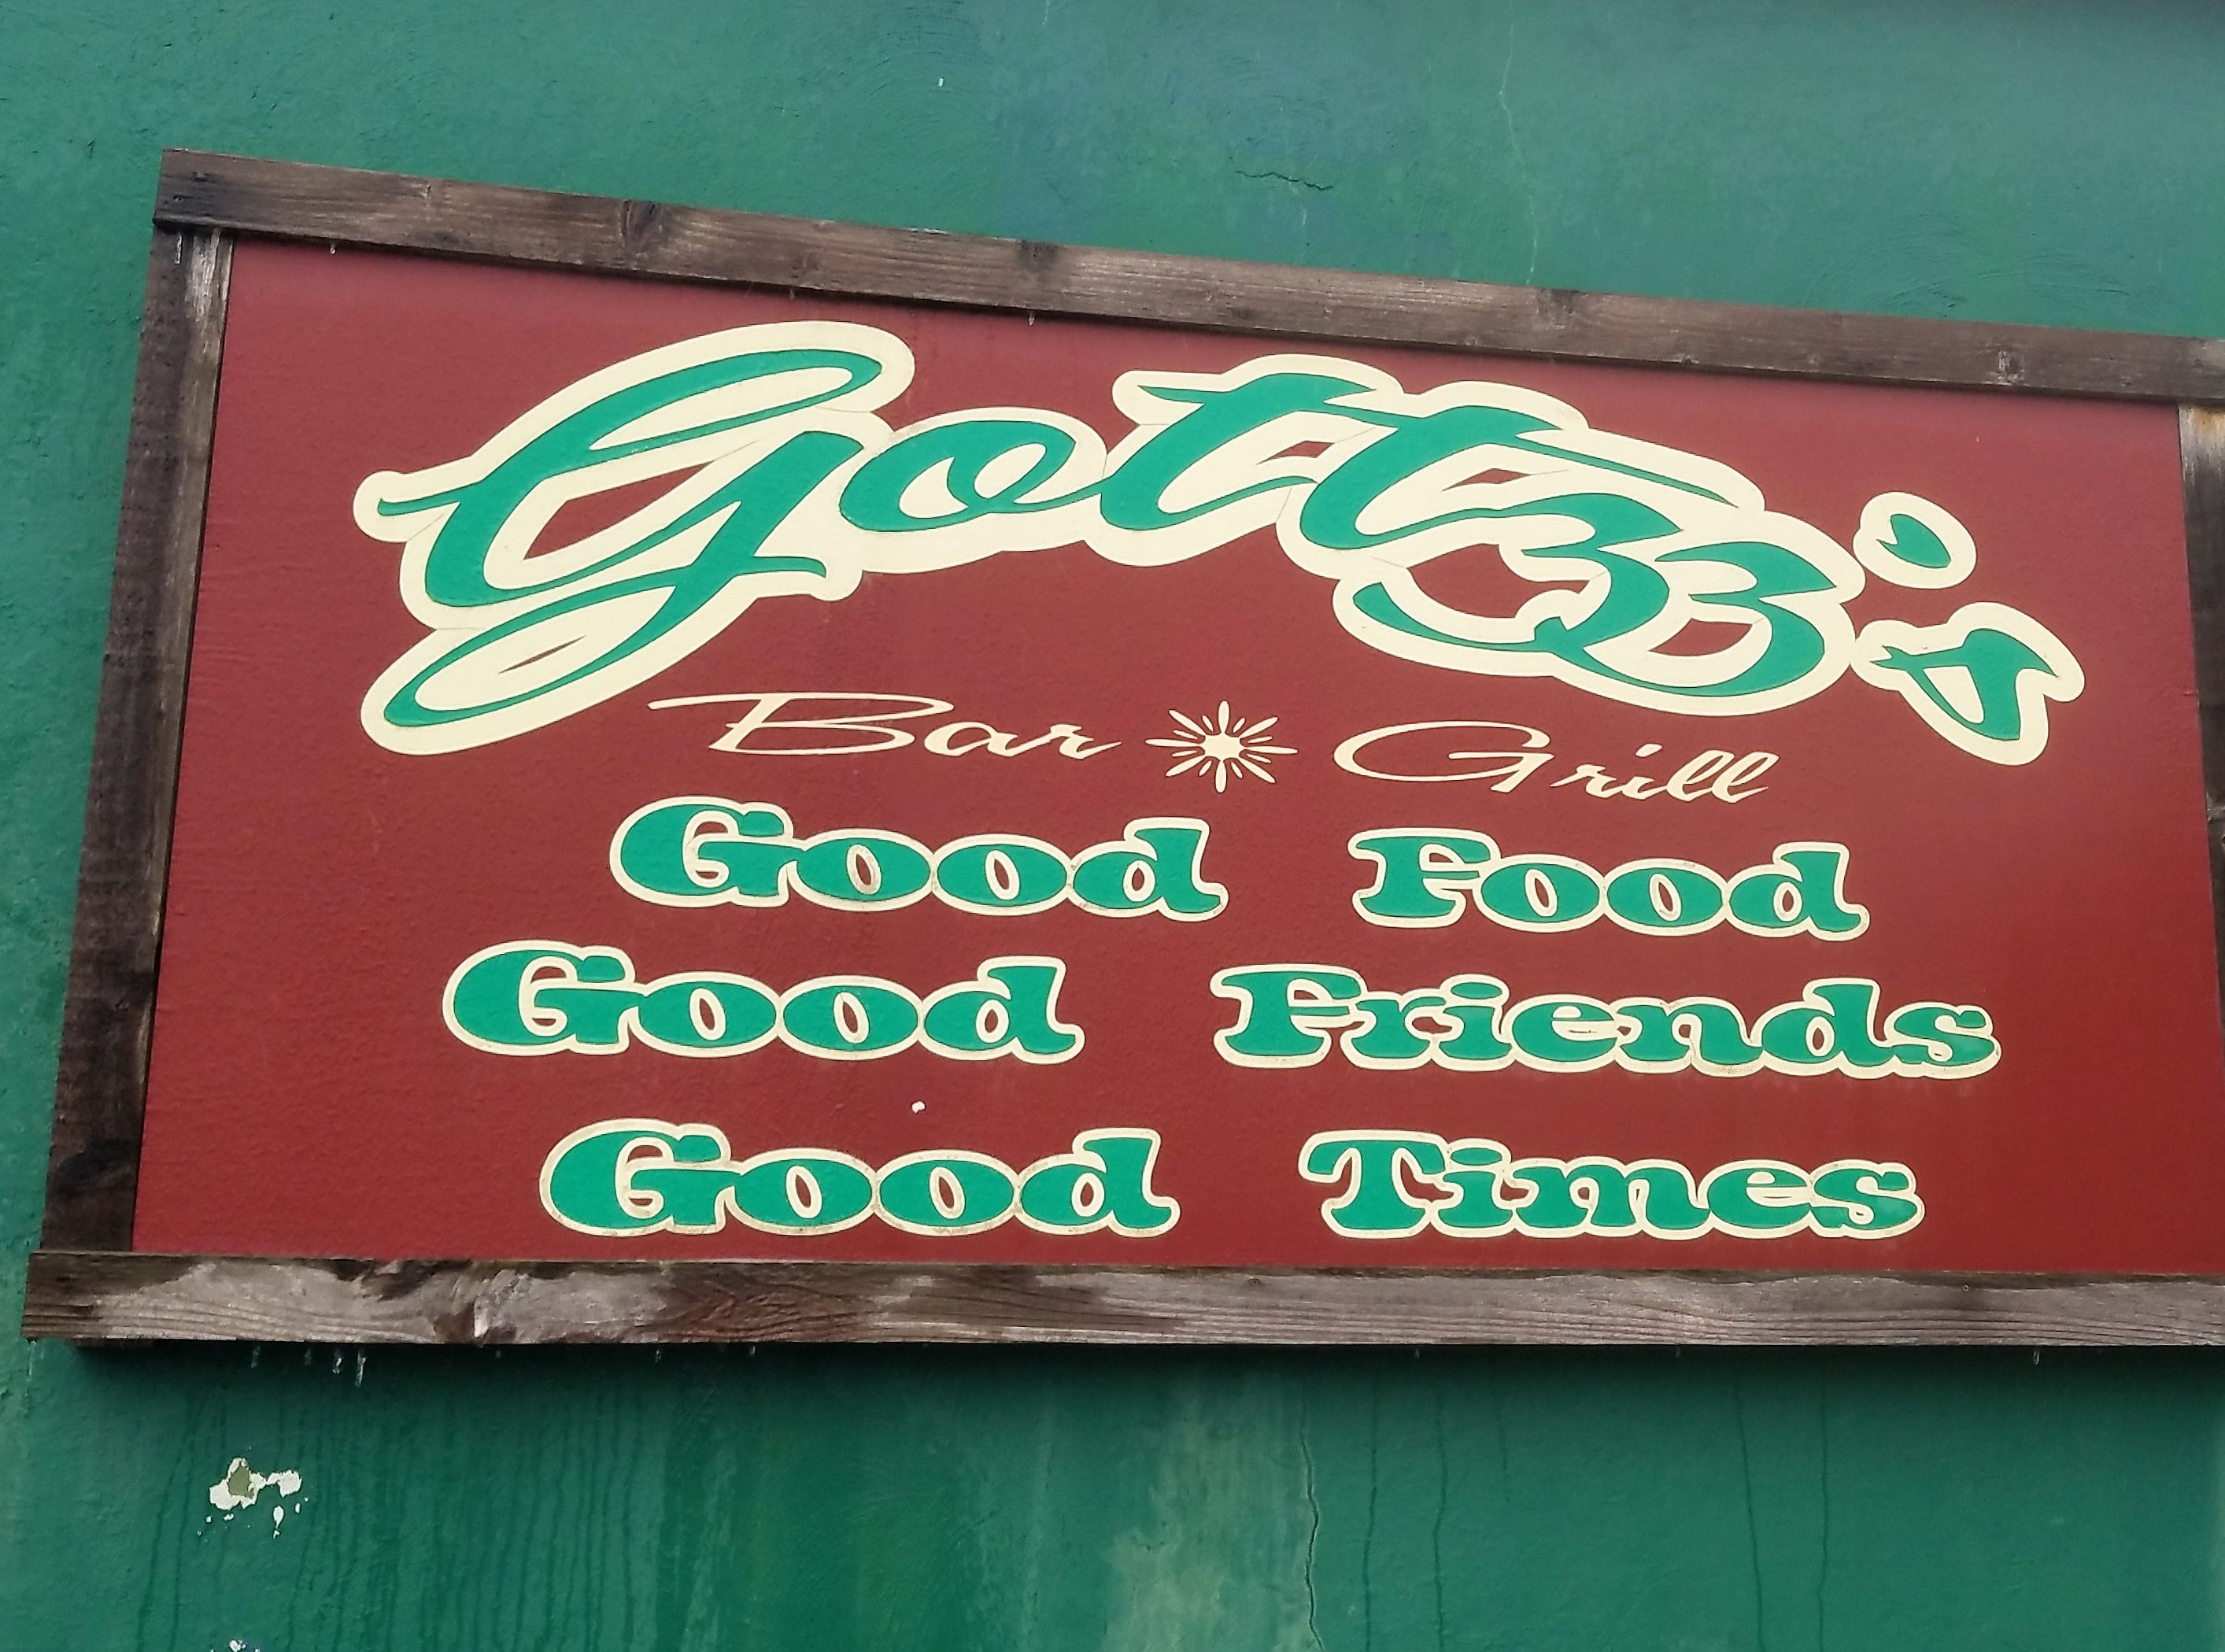 Gottzz's is located at 105 Cherry St. in Carmi.